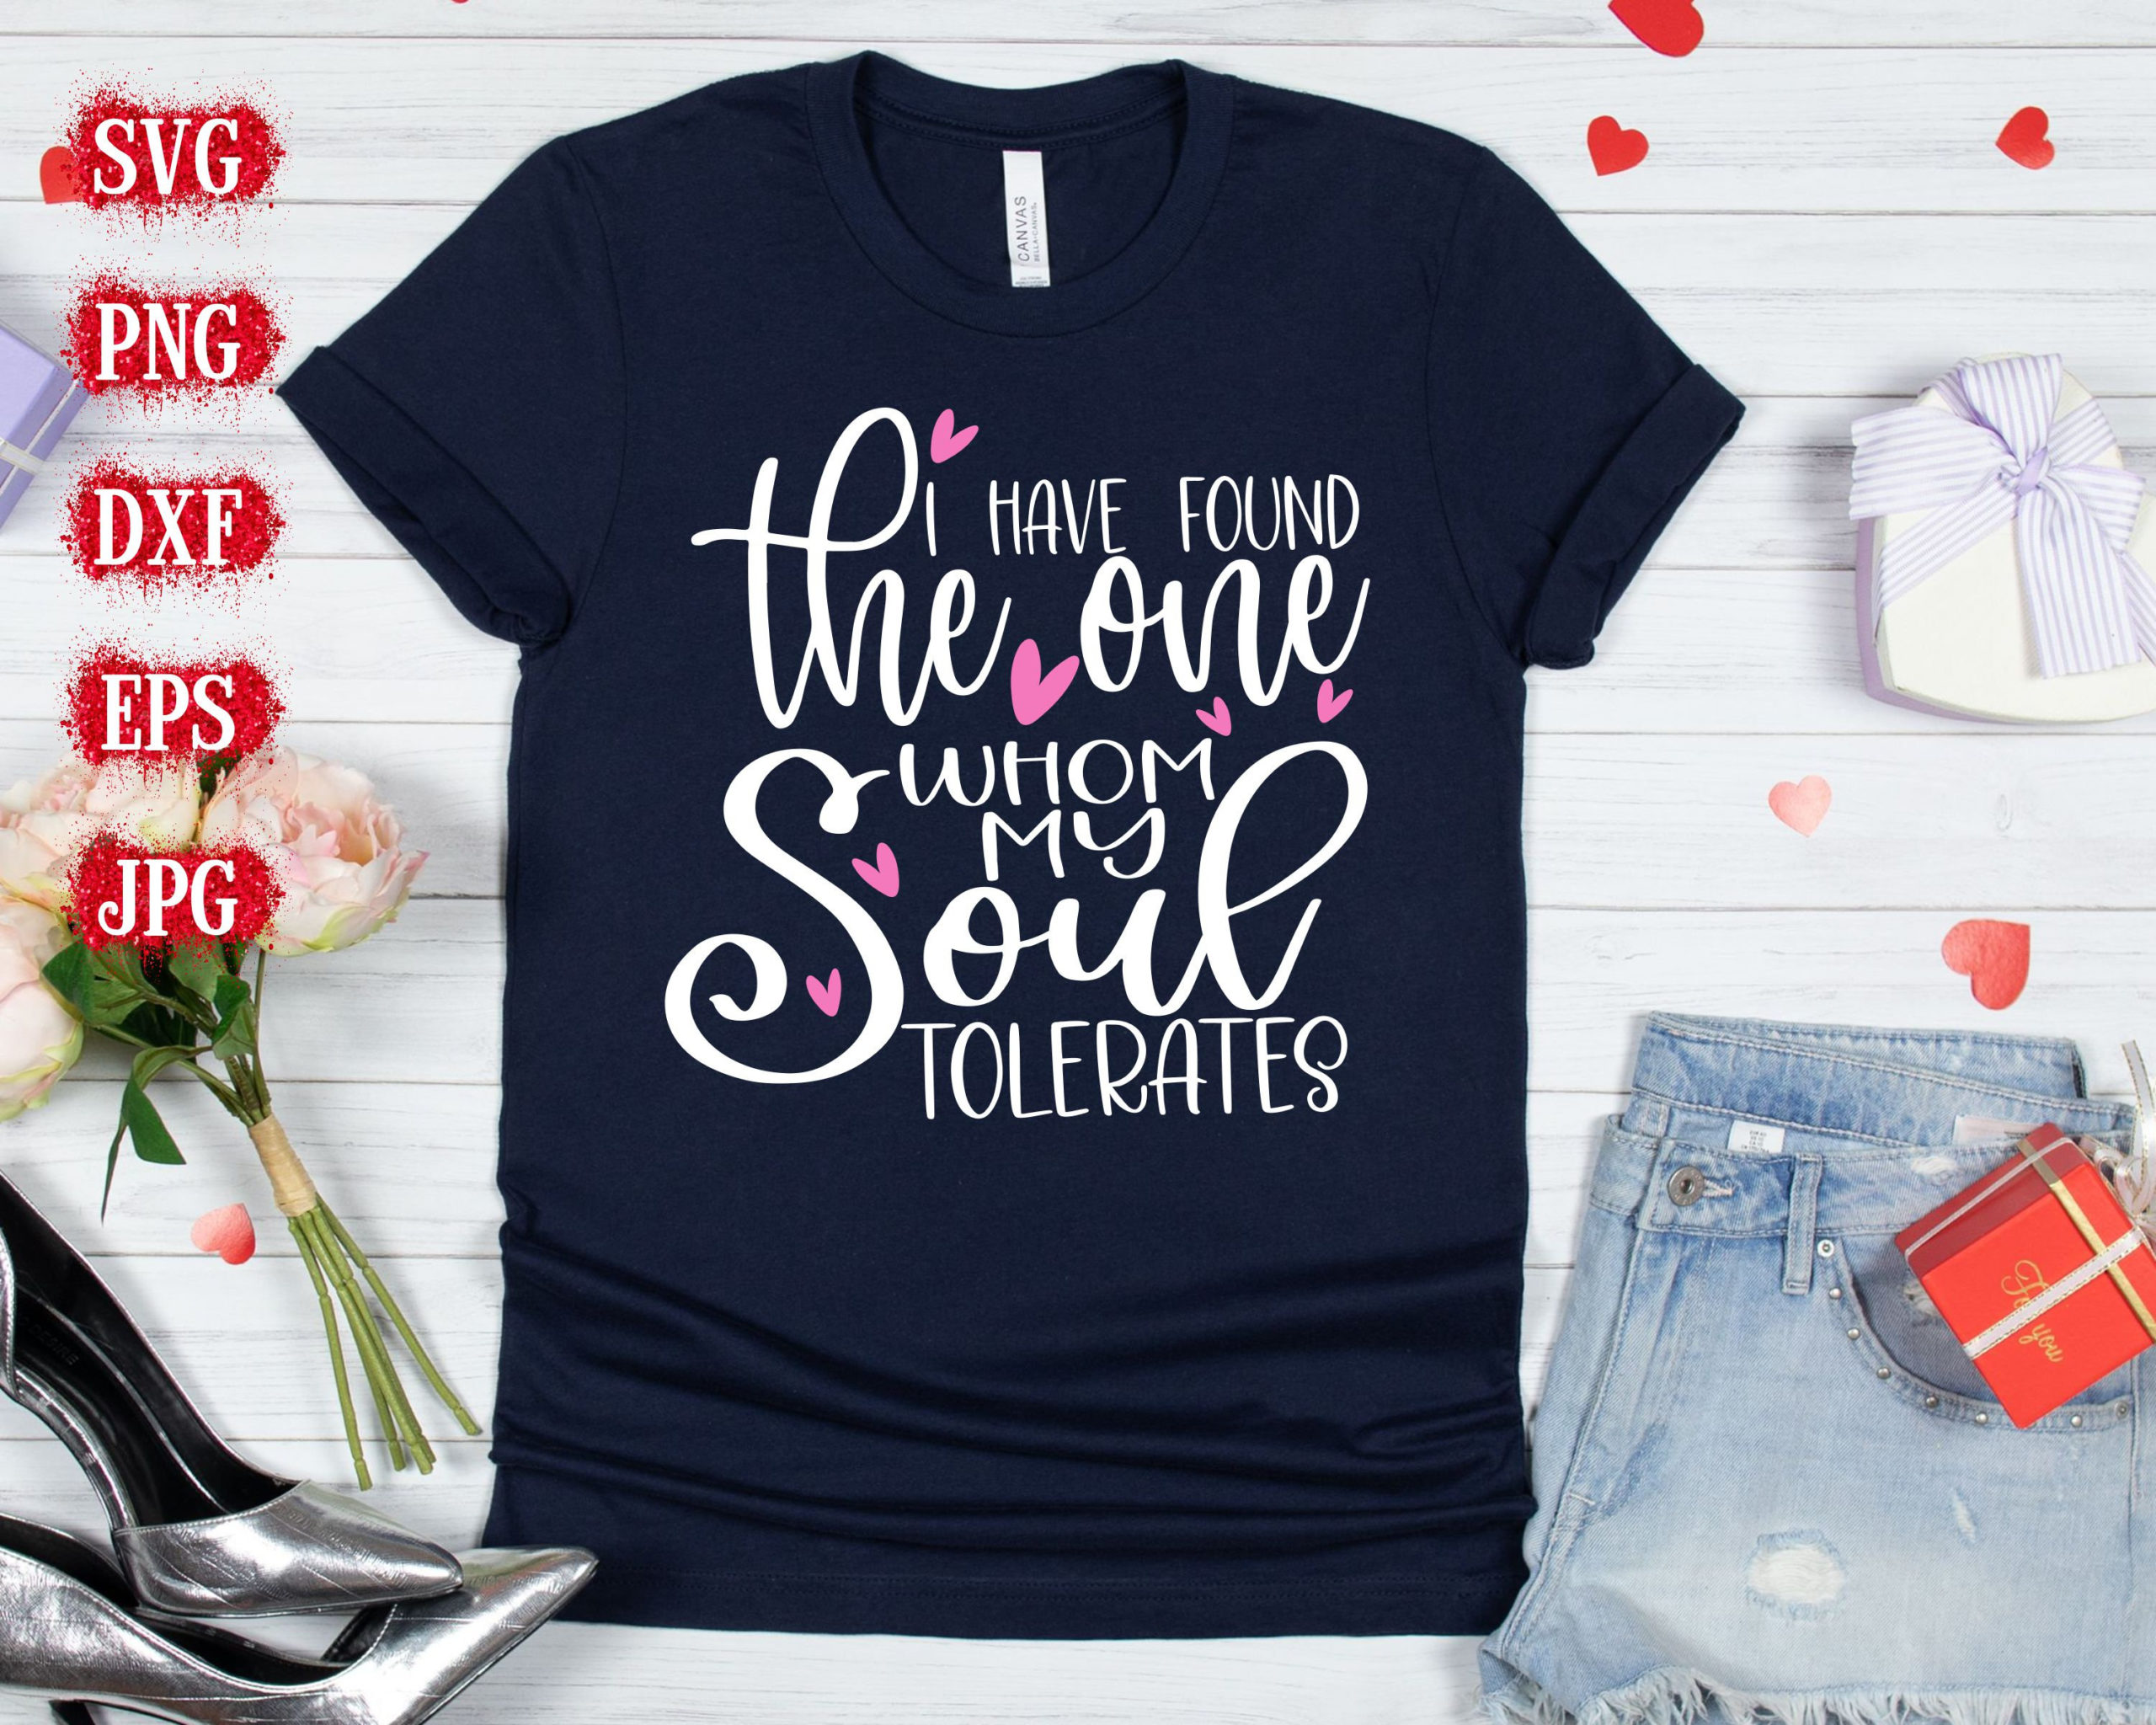 I-have-found-the-one-whom-my-soul-tolerates-svgvalentines-svg-valentines-day-svg-valentines-svg-valentines-cut-files-cricut-cut-files-600a04c0